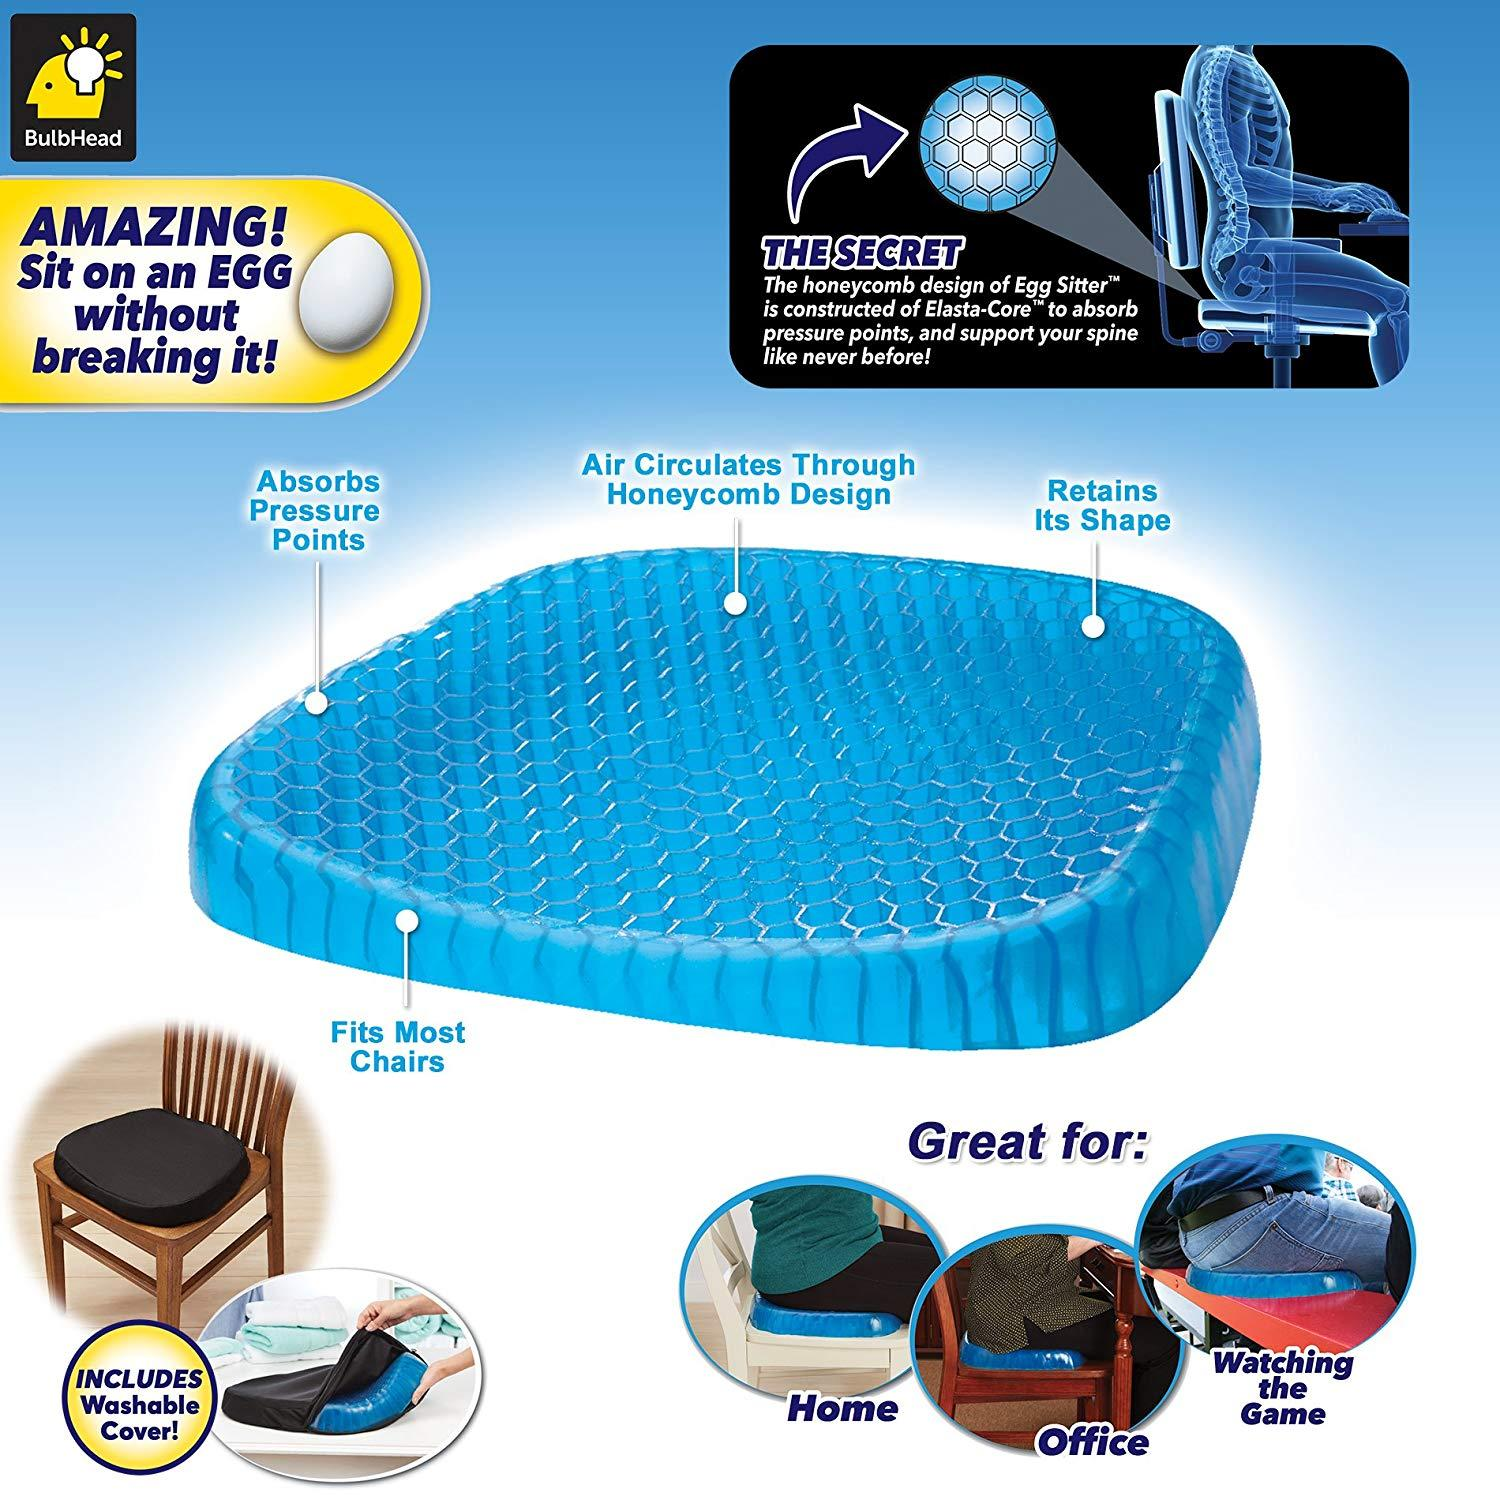 Seat Cushions - Egg Sitter Seat Cushion with Non-Slip Cover Breathable Honeycomb Design Absorbs Pressure Points